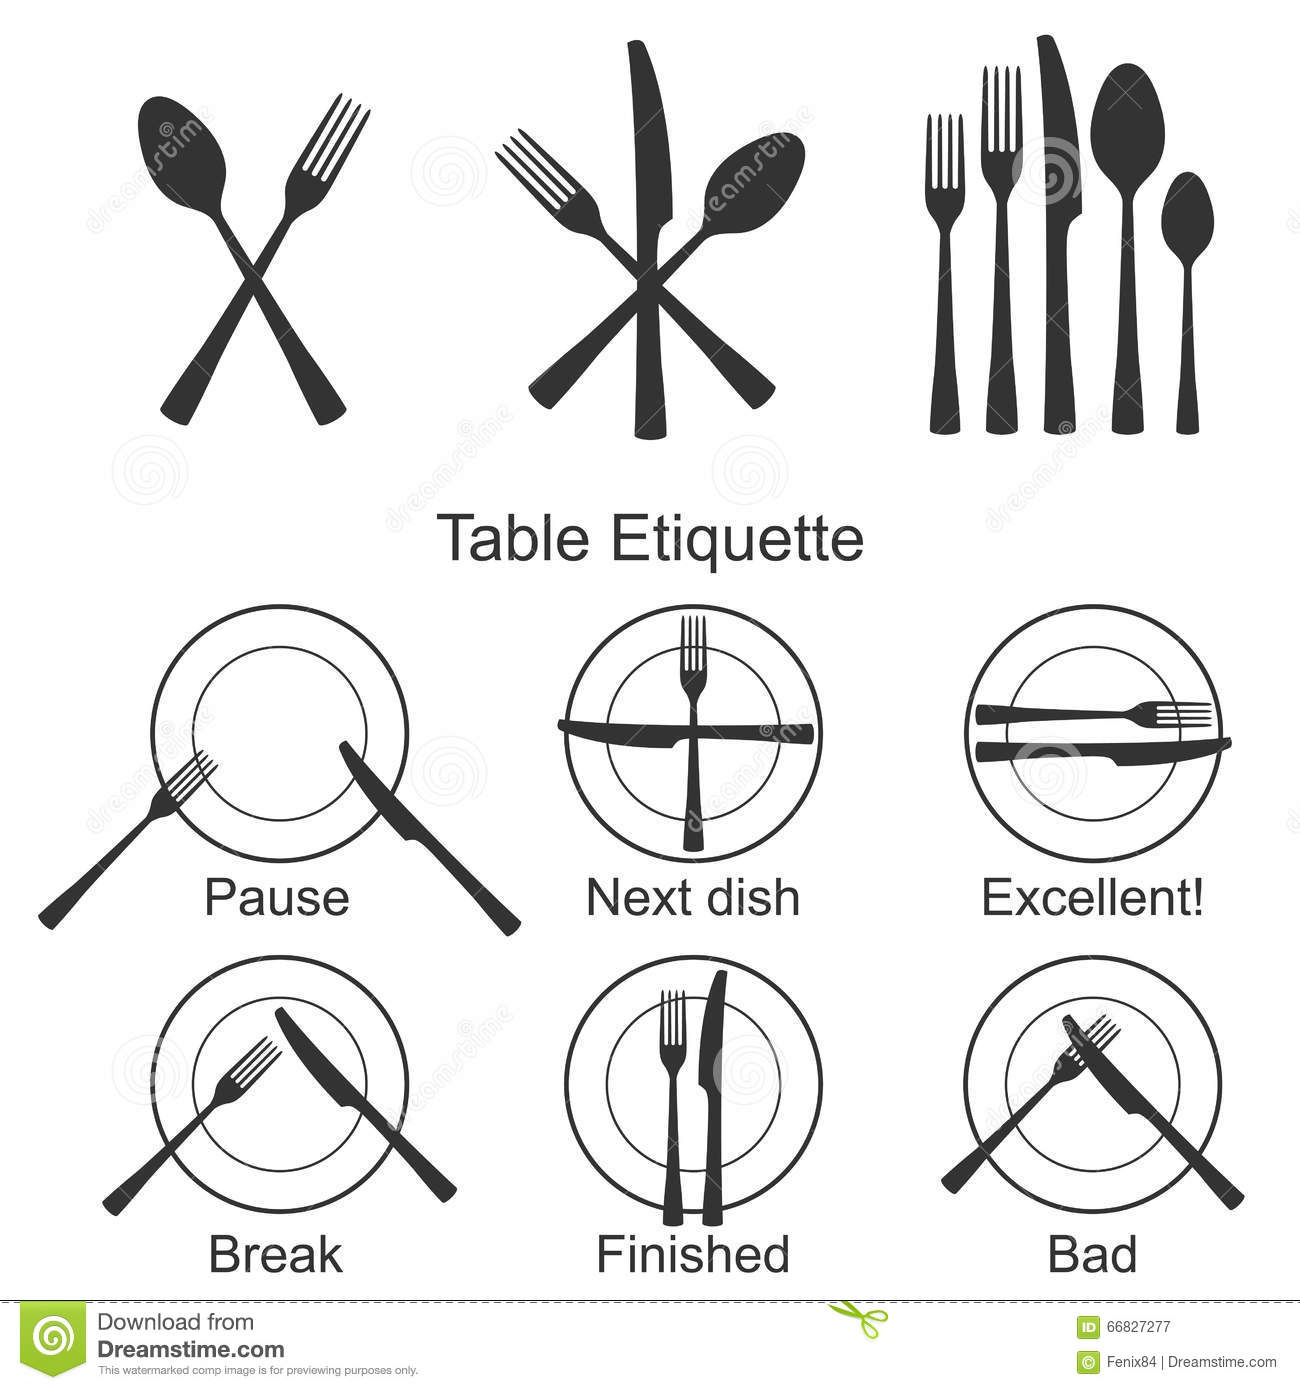 Posizione Posate Galateo Cutlery And Signs Of Table Etiquette Stock Vector